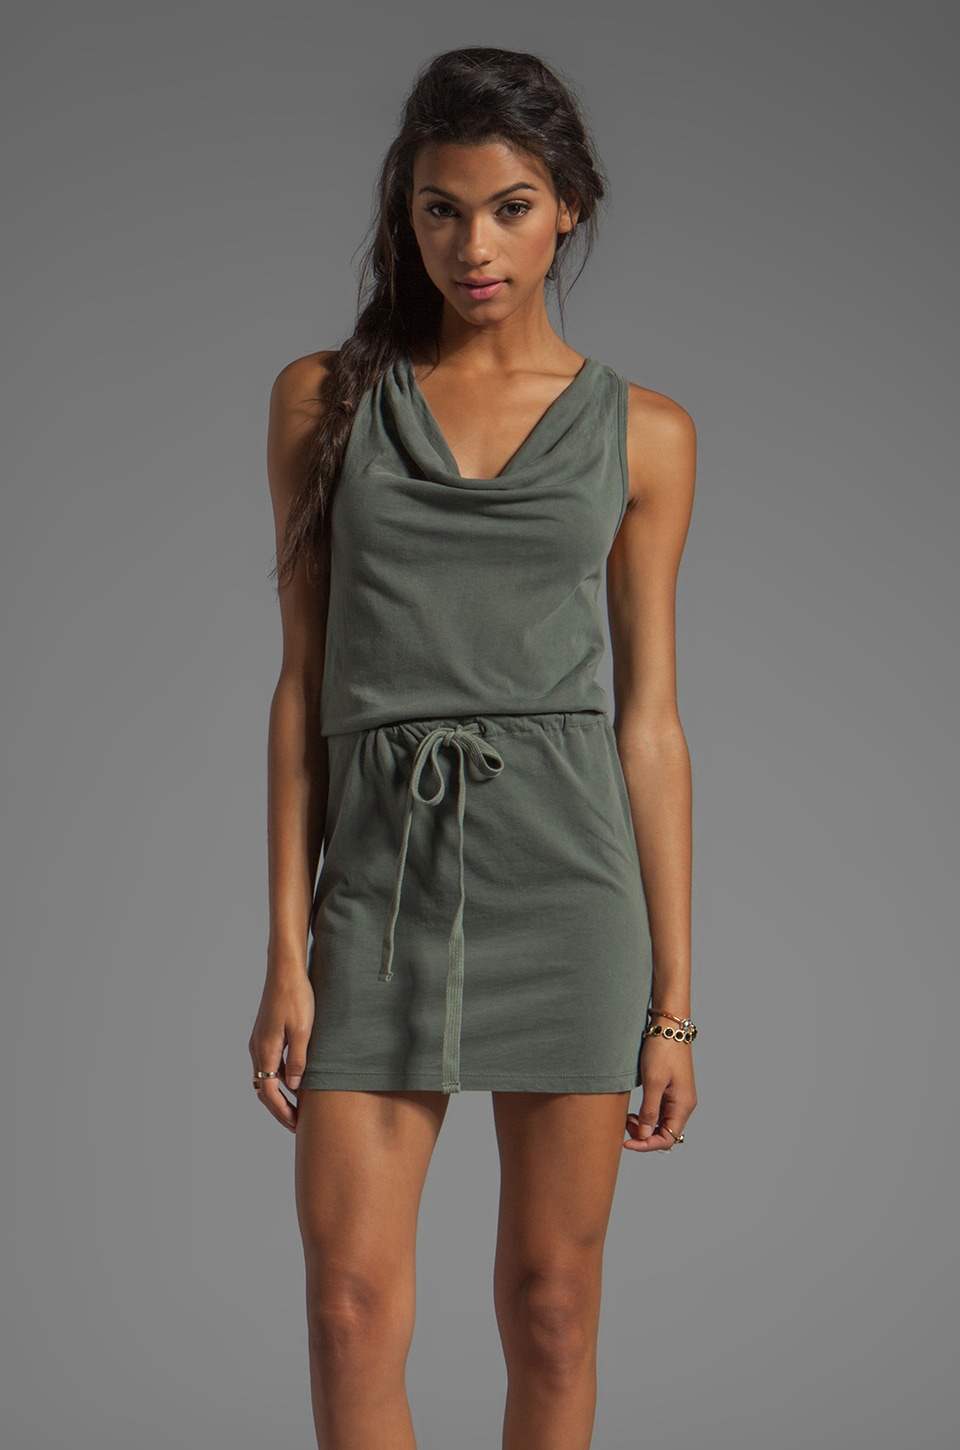 James Perse Sanded Jersey Racerback Dress in Alligator